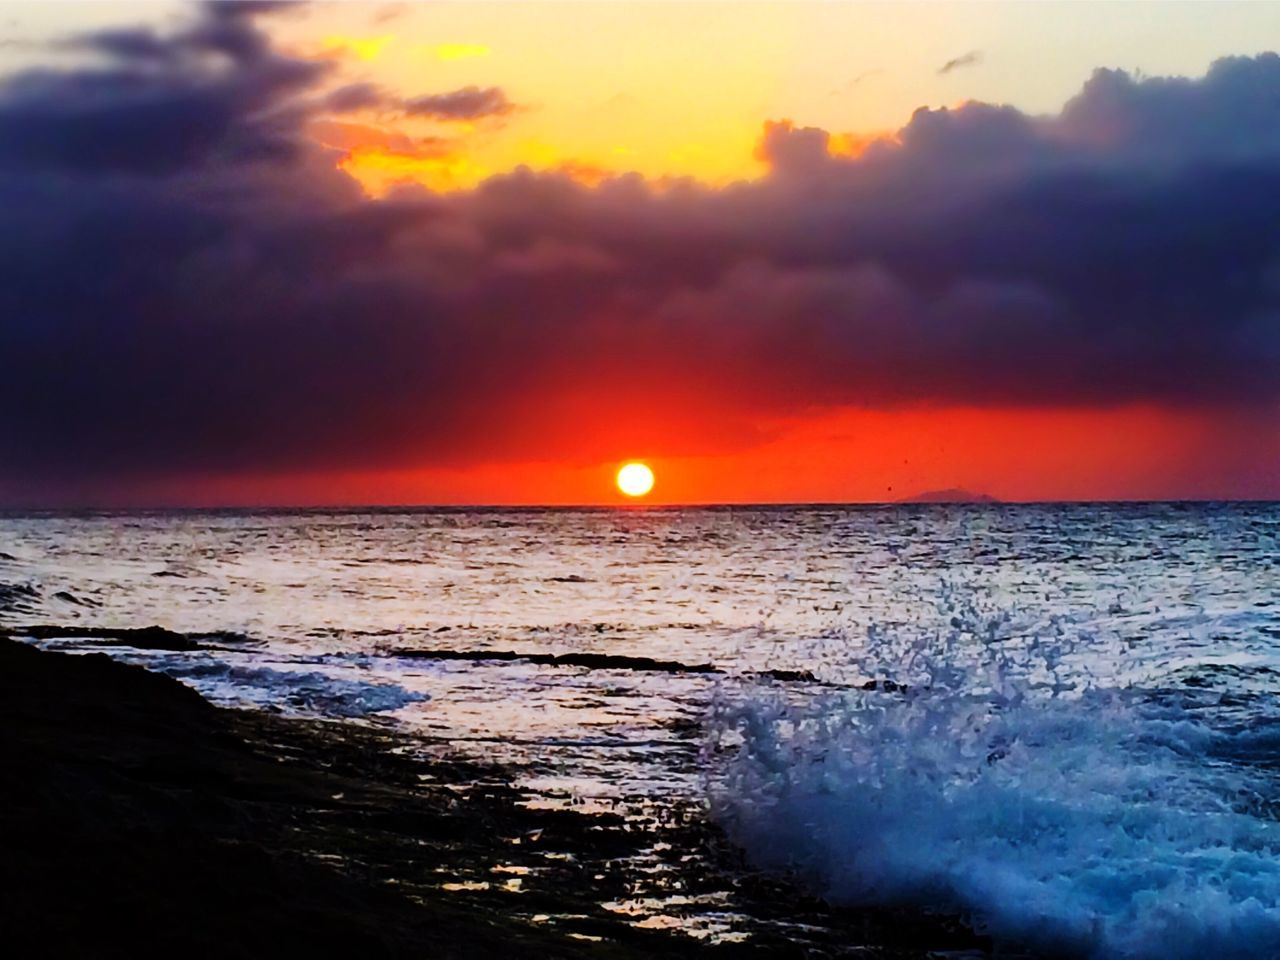 sunset, sea, beauty in nature, scenics, orange color, horizon over water, nature, sky, tranquil scene, sun, cloud - sky, tranquility, dramatic sky, water, idyllic, no people, outdoors, beach, wave, day